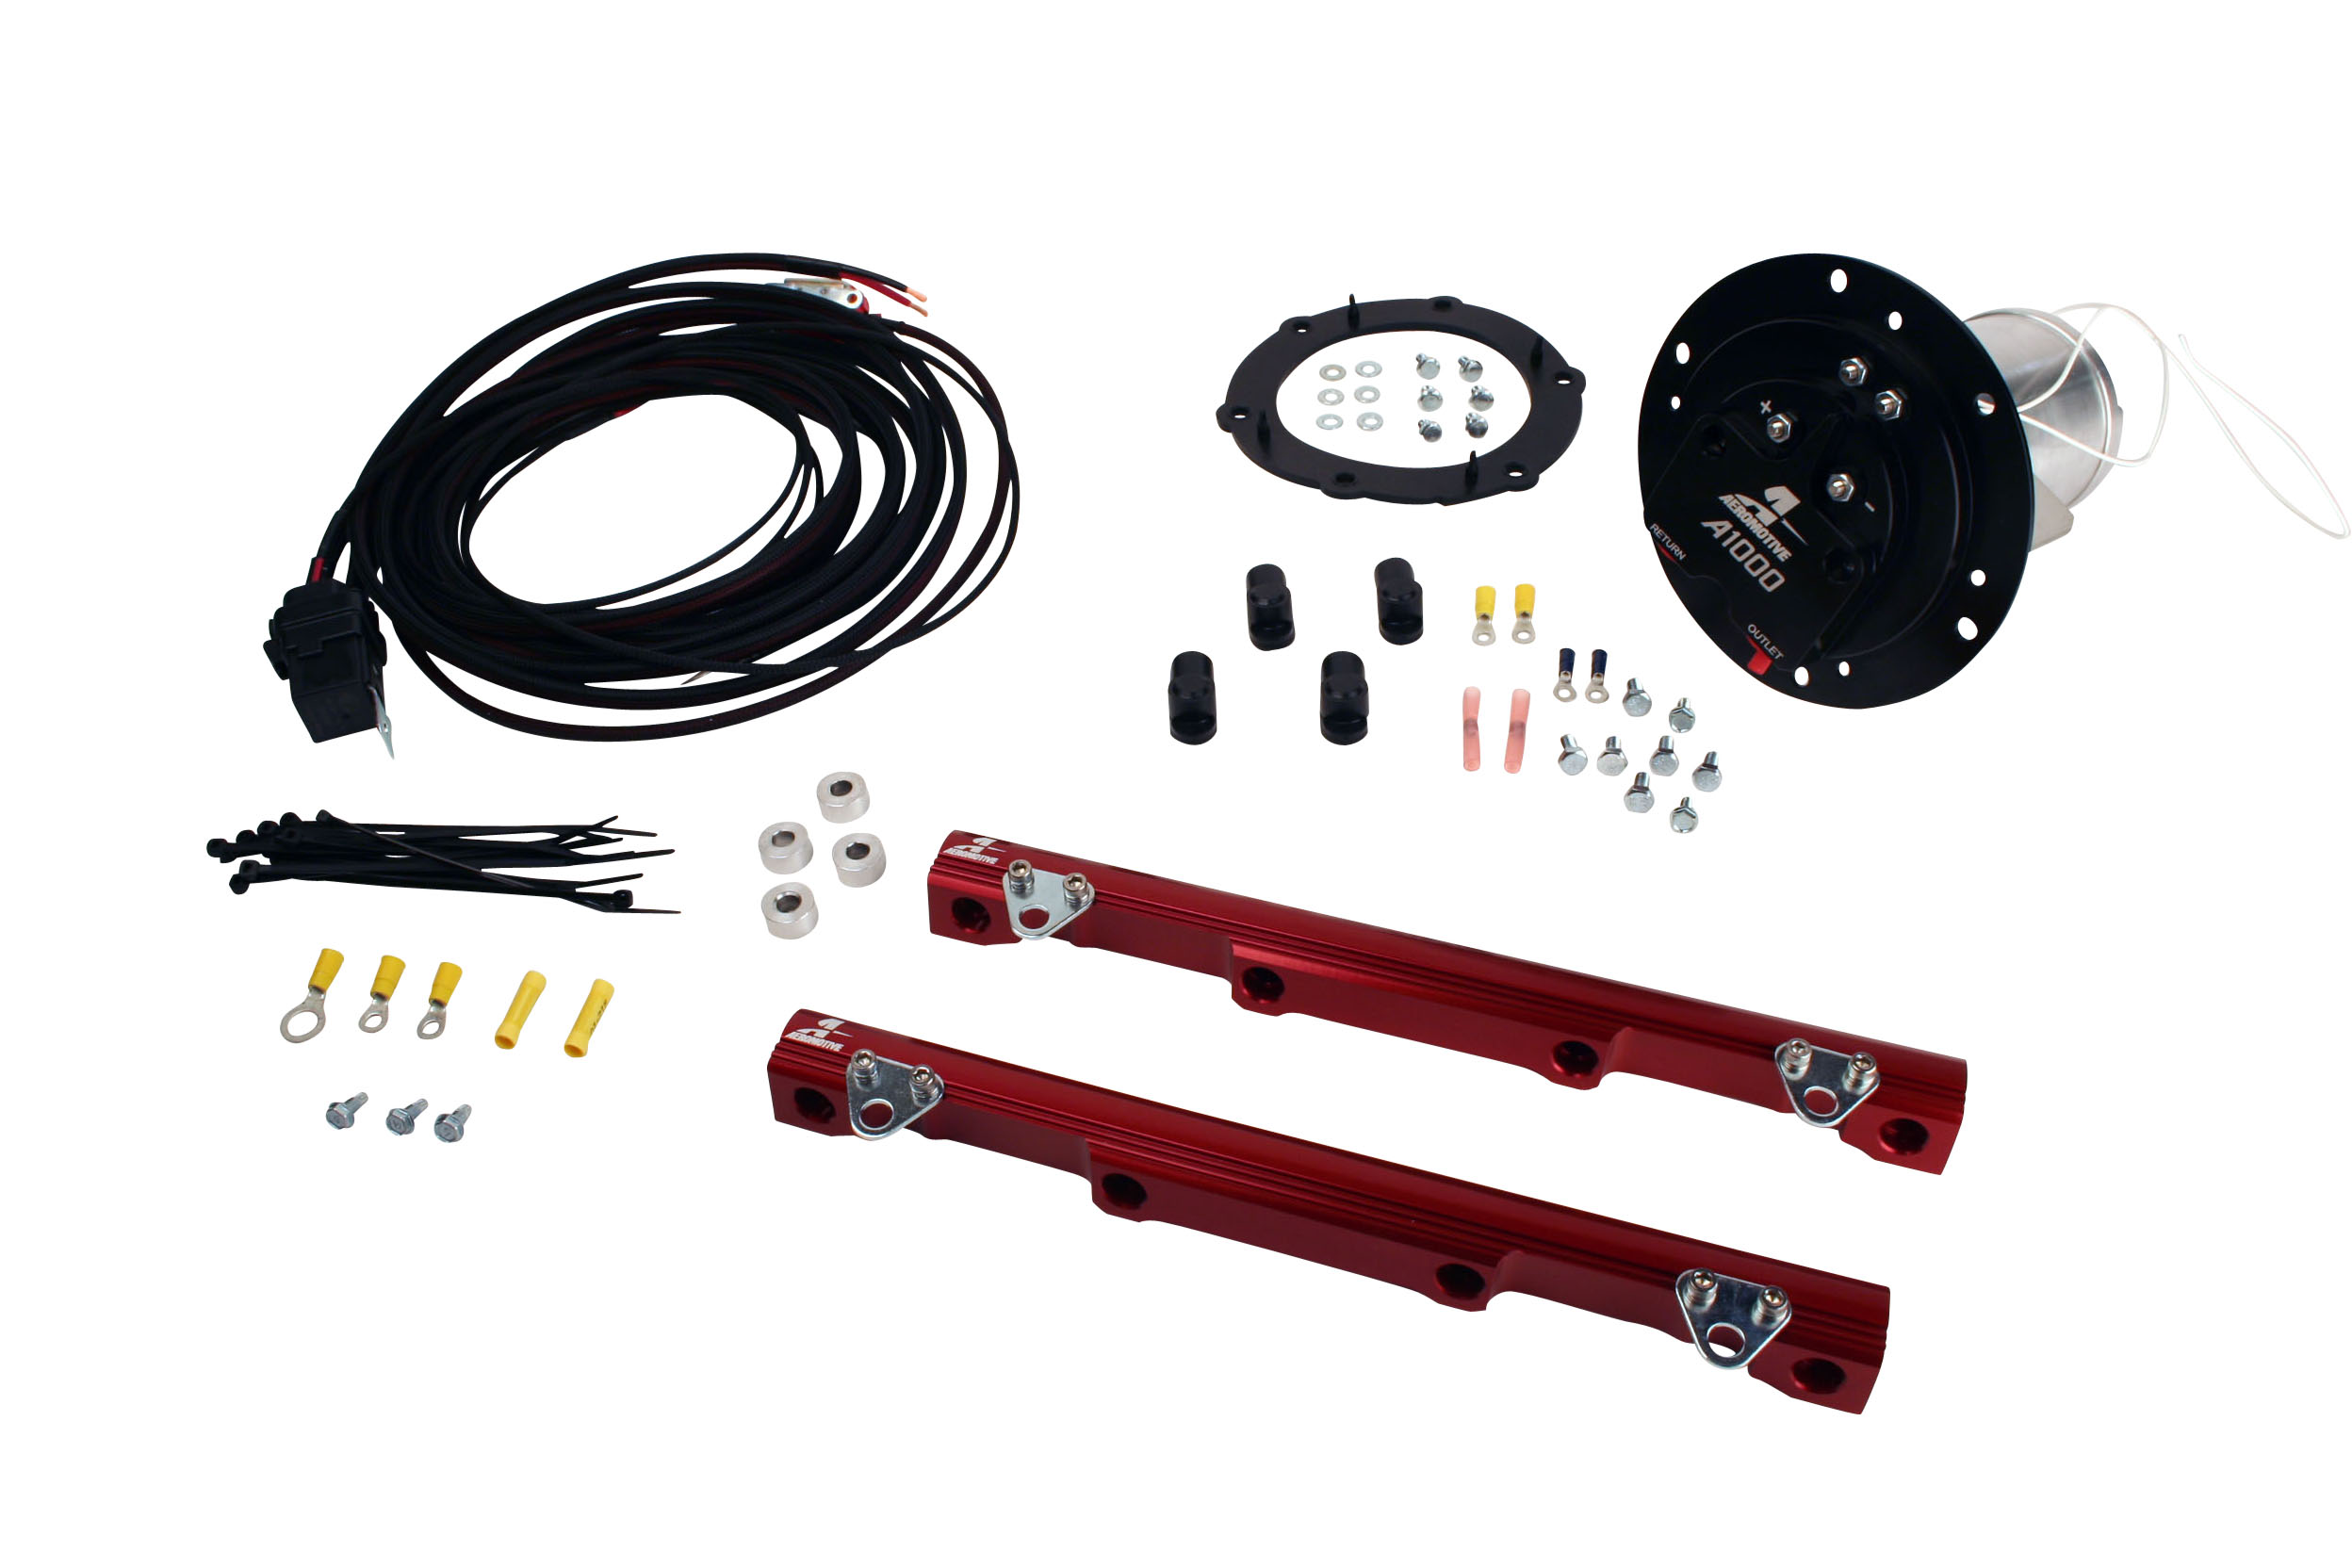 2003-2004 Ford Mustang Cobra Aeromotive Stealth A1000 Race Fuel System